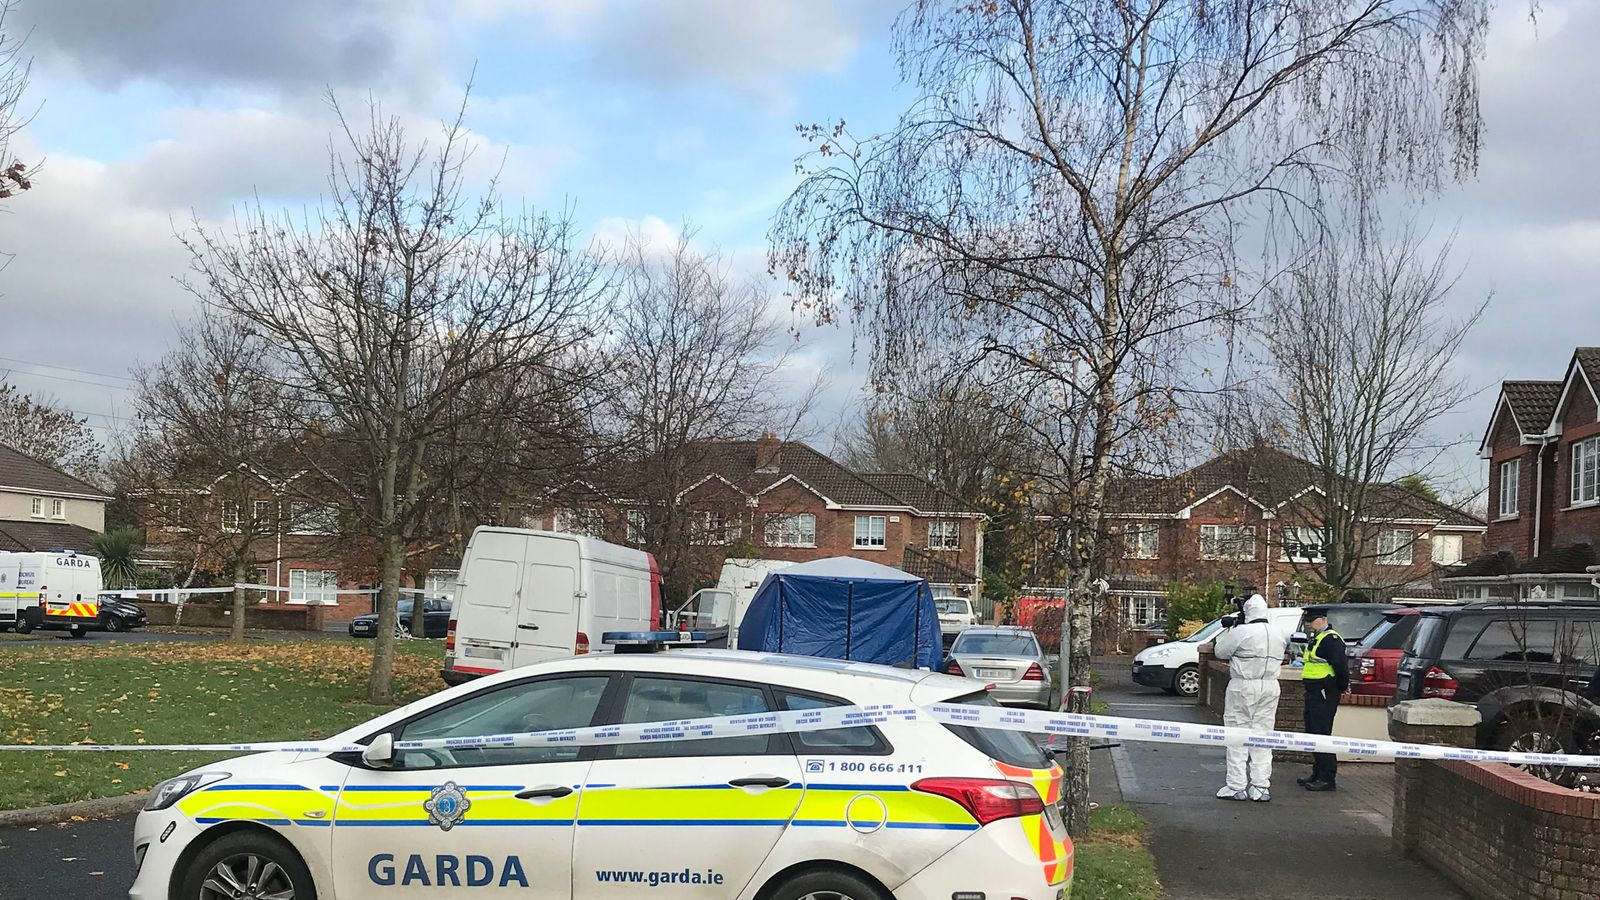 Man shot dead outside home 'linked to Hutch gang'